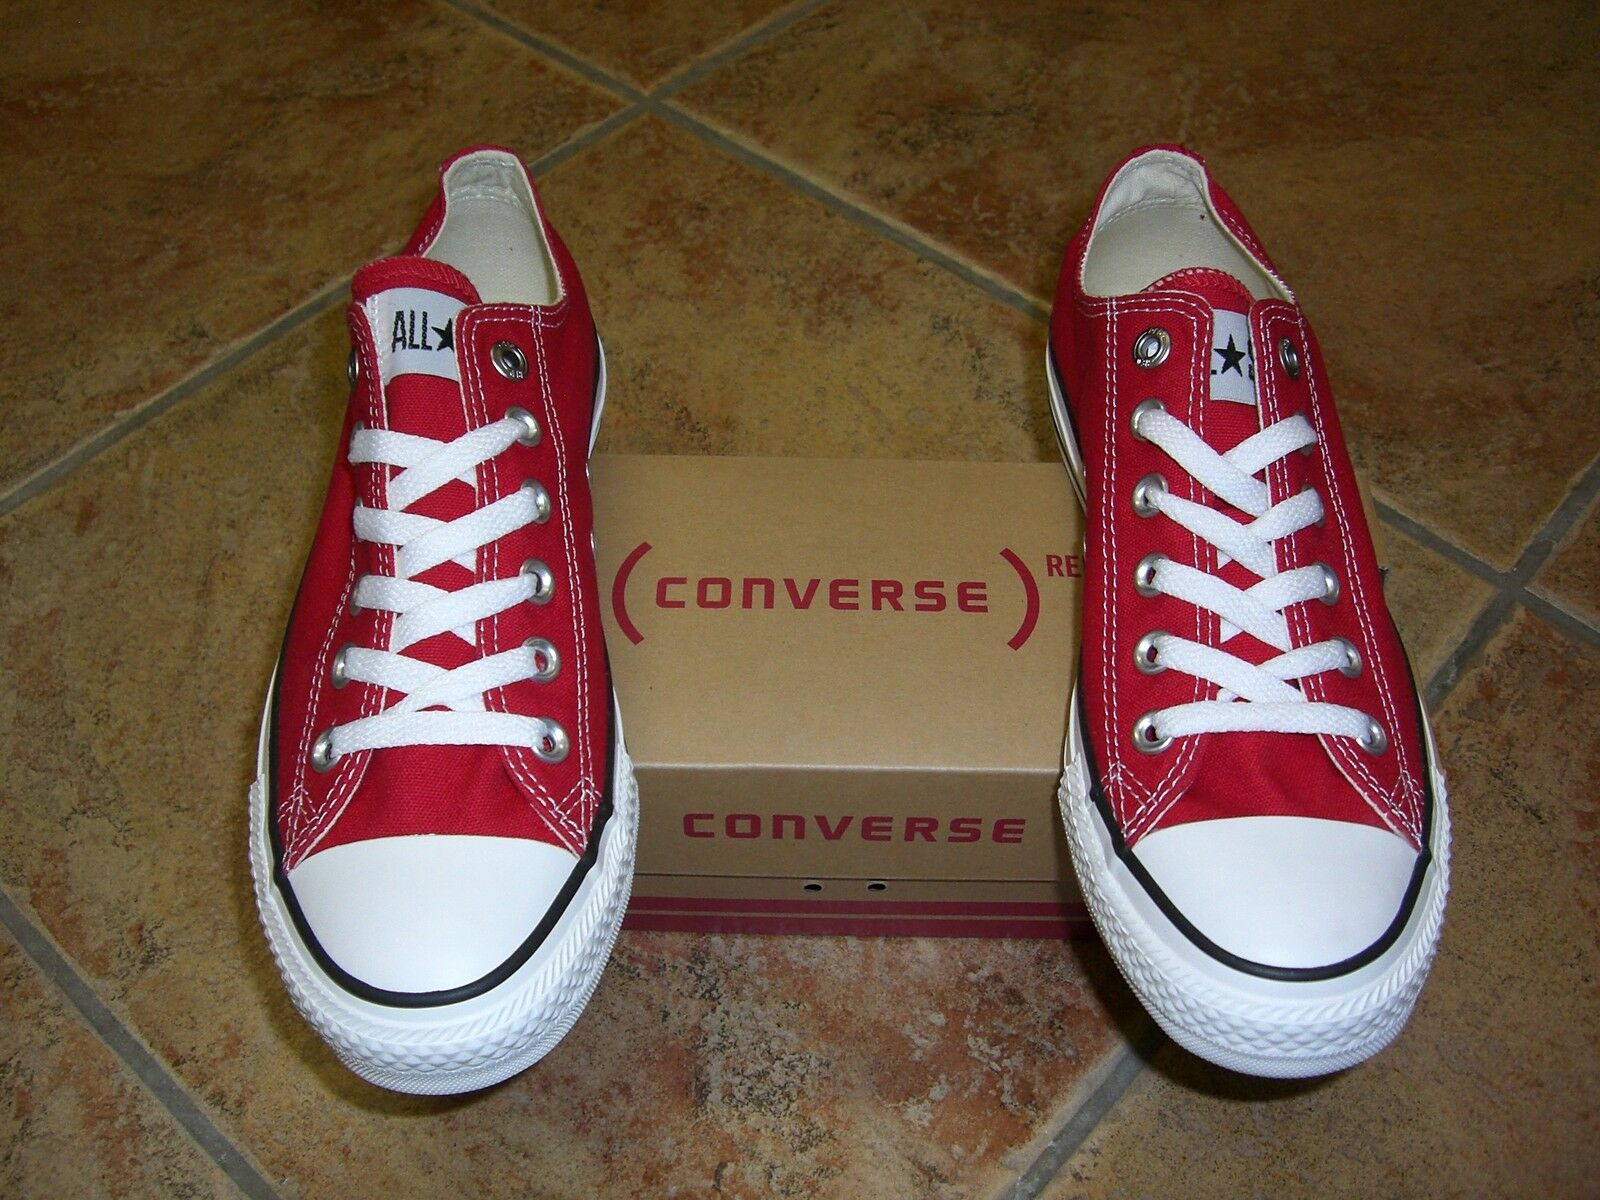 Converse  Chucks  All Star  OX  Gr.46,5  Red  Rot  M9696  Neu  Super Trendy